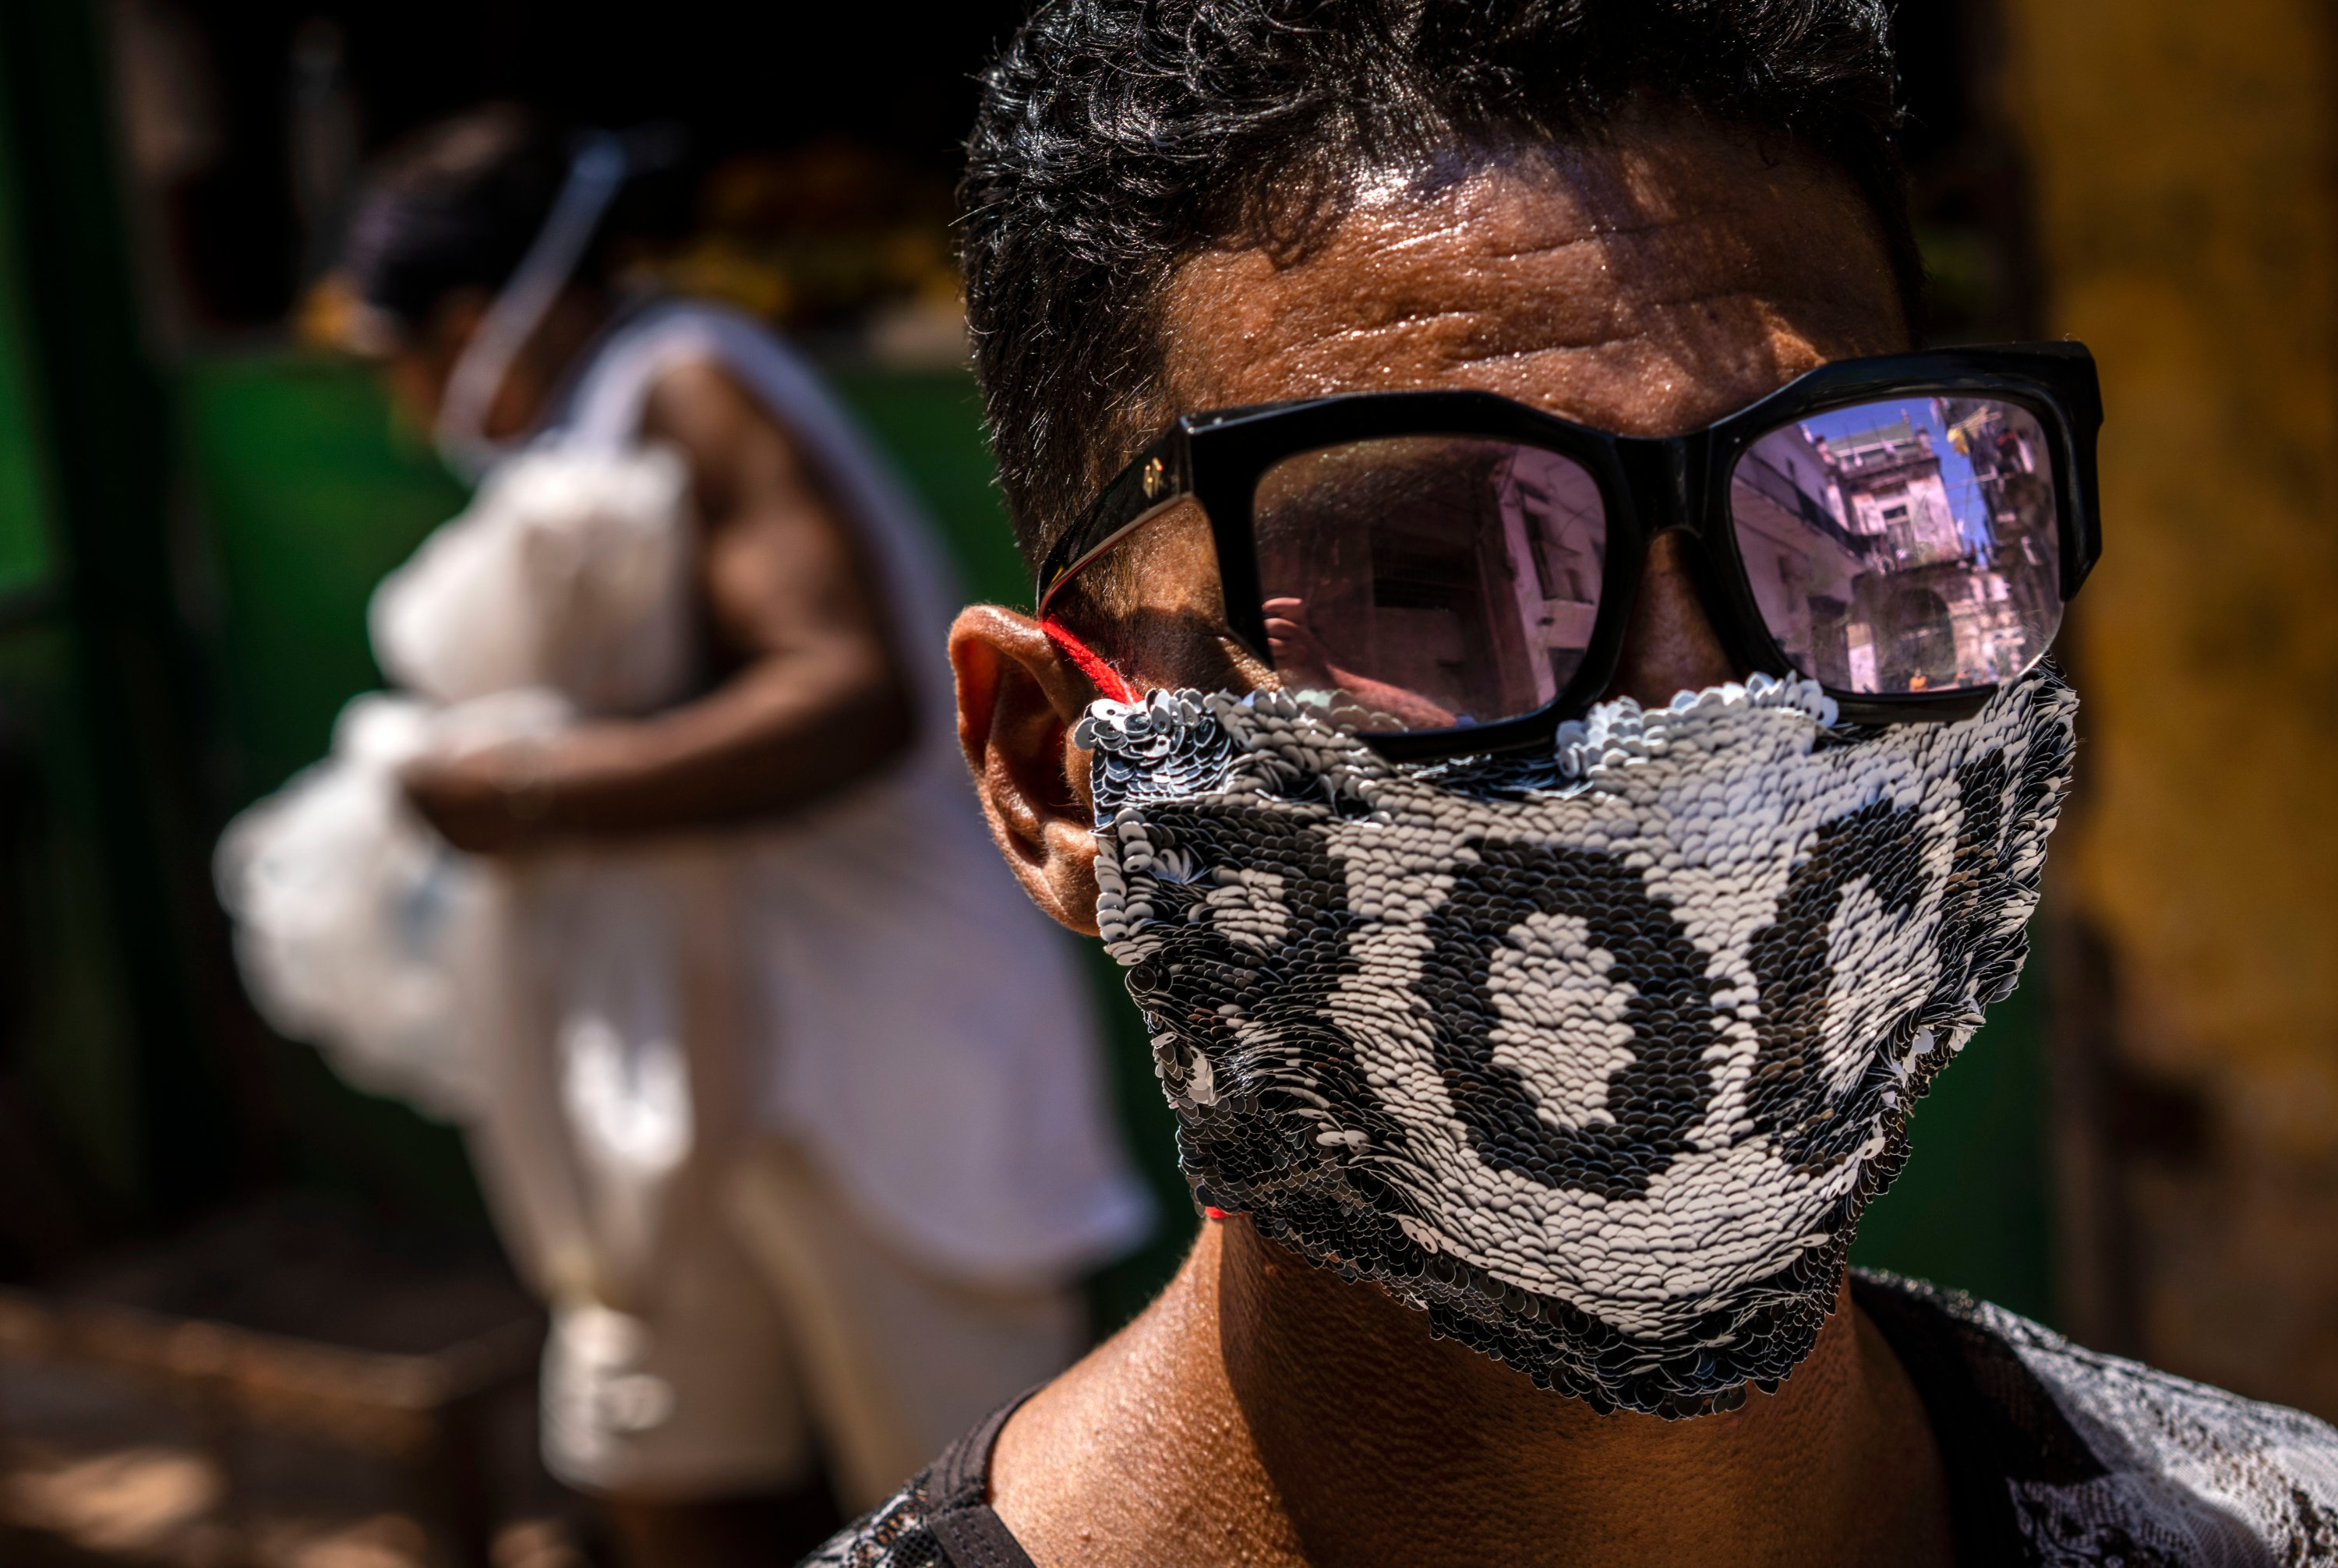 A youth wears a homemade face mask made of sequenced fabric amid the spread of the new coronavirus in Old Havana, Cuba, Friday, March 27, 2020. (AP Photo)